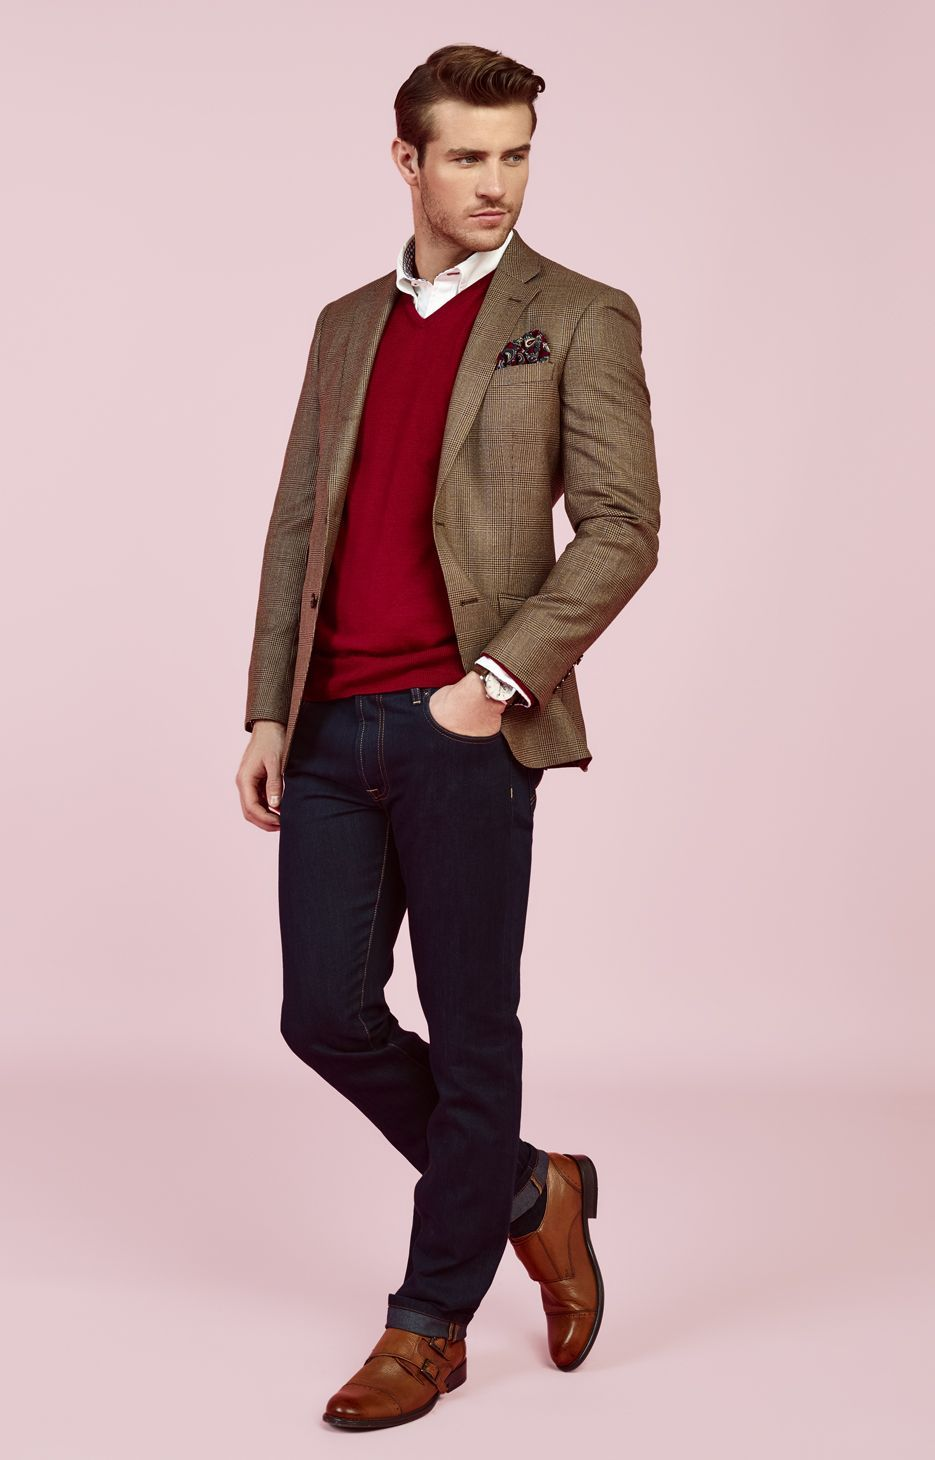 business casual outfits instagram com codyschneiderx men s style middot business casual